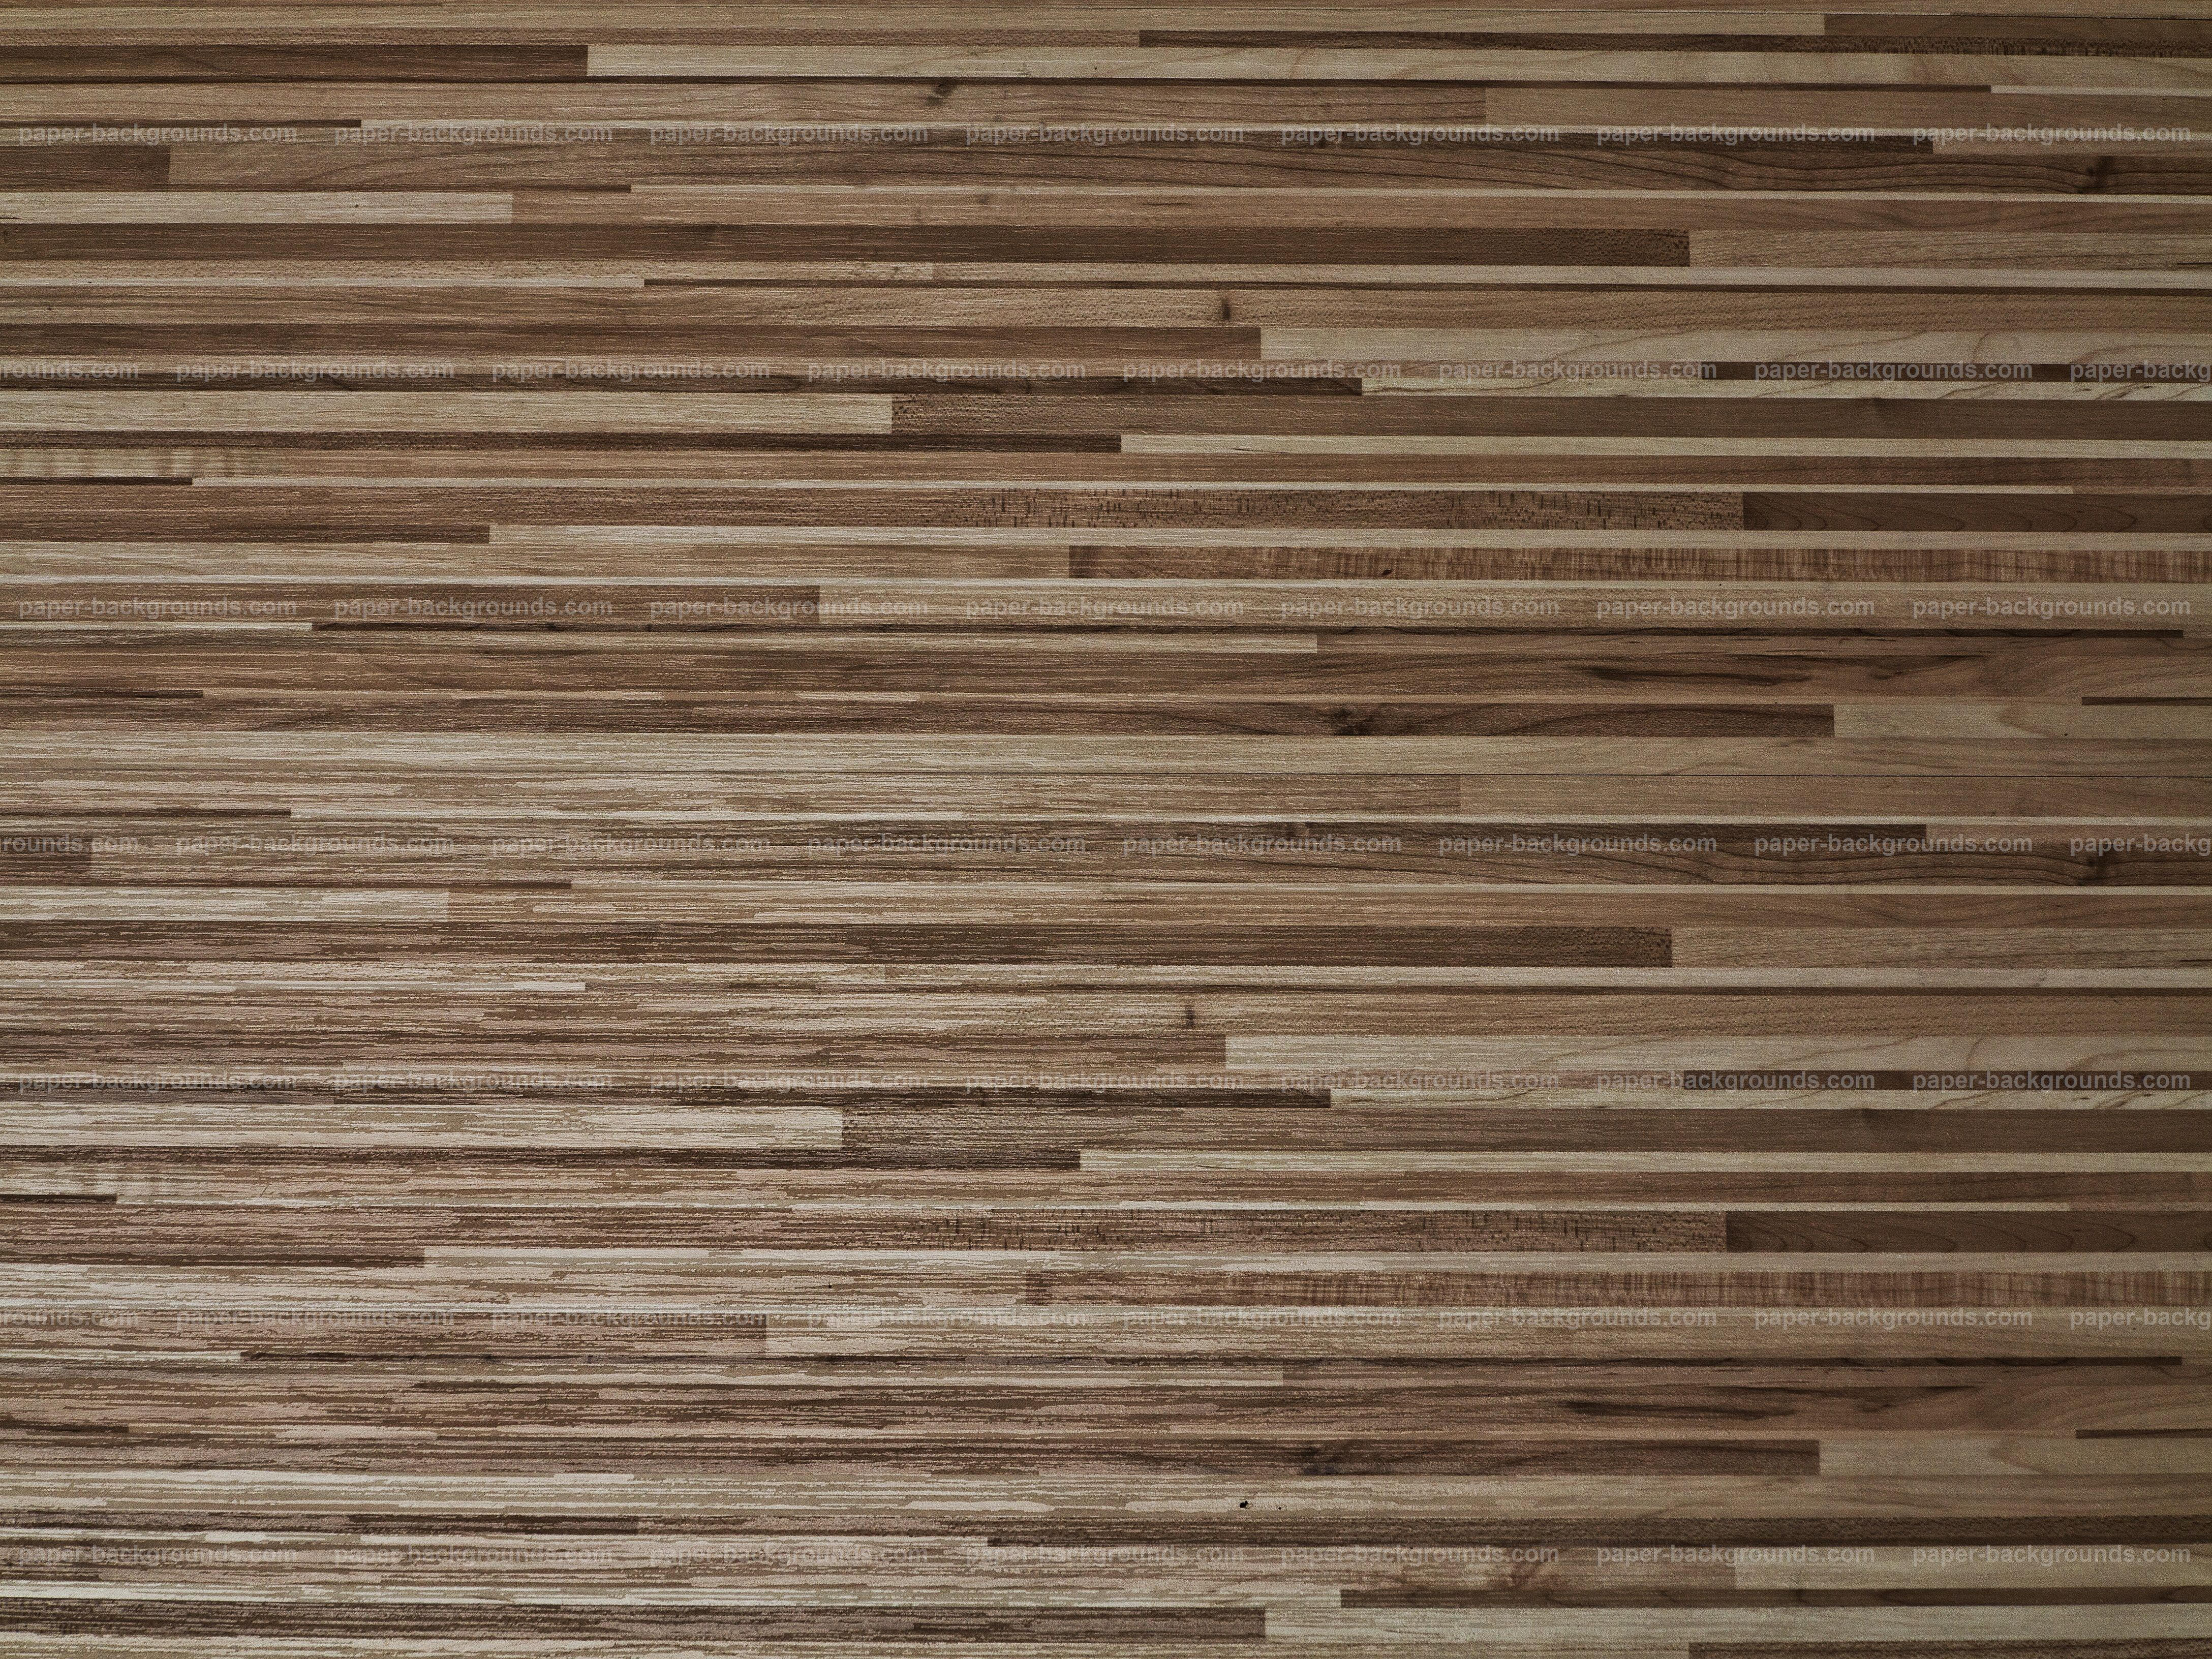 wood floor pattern background paper backgrounds download high resolution u0026 hd wallpapers